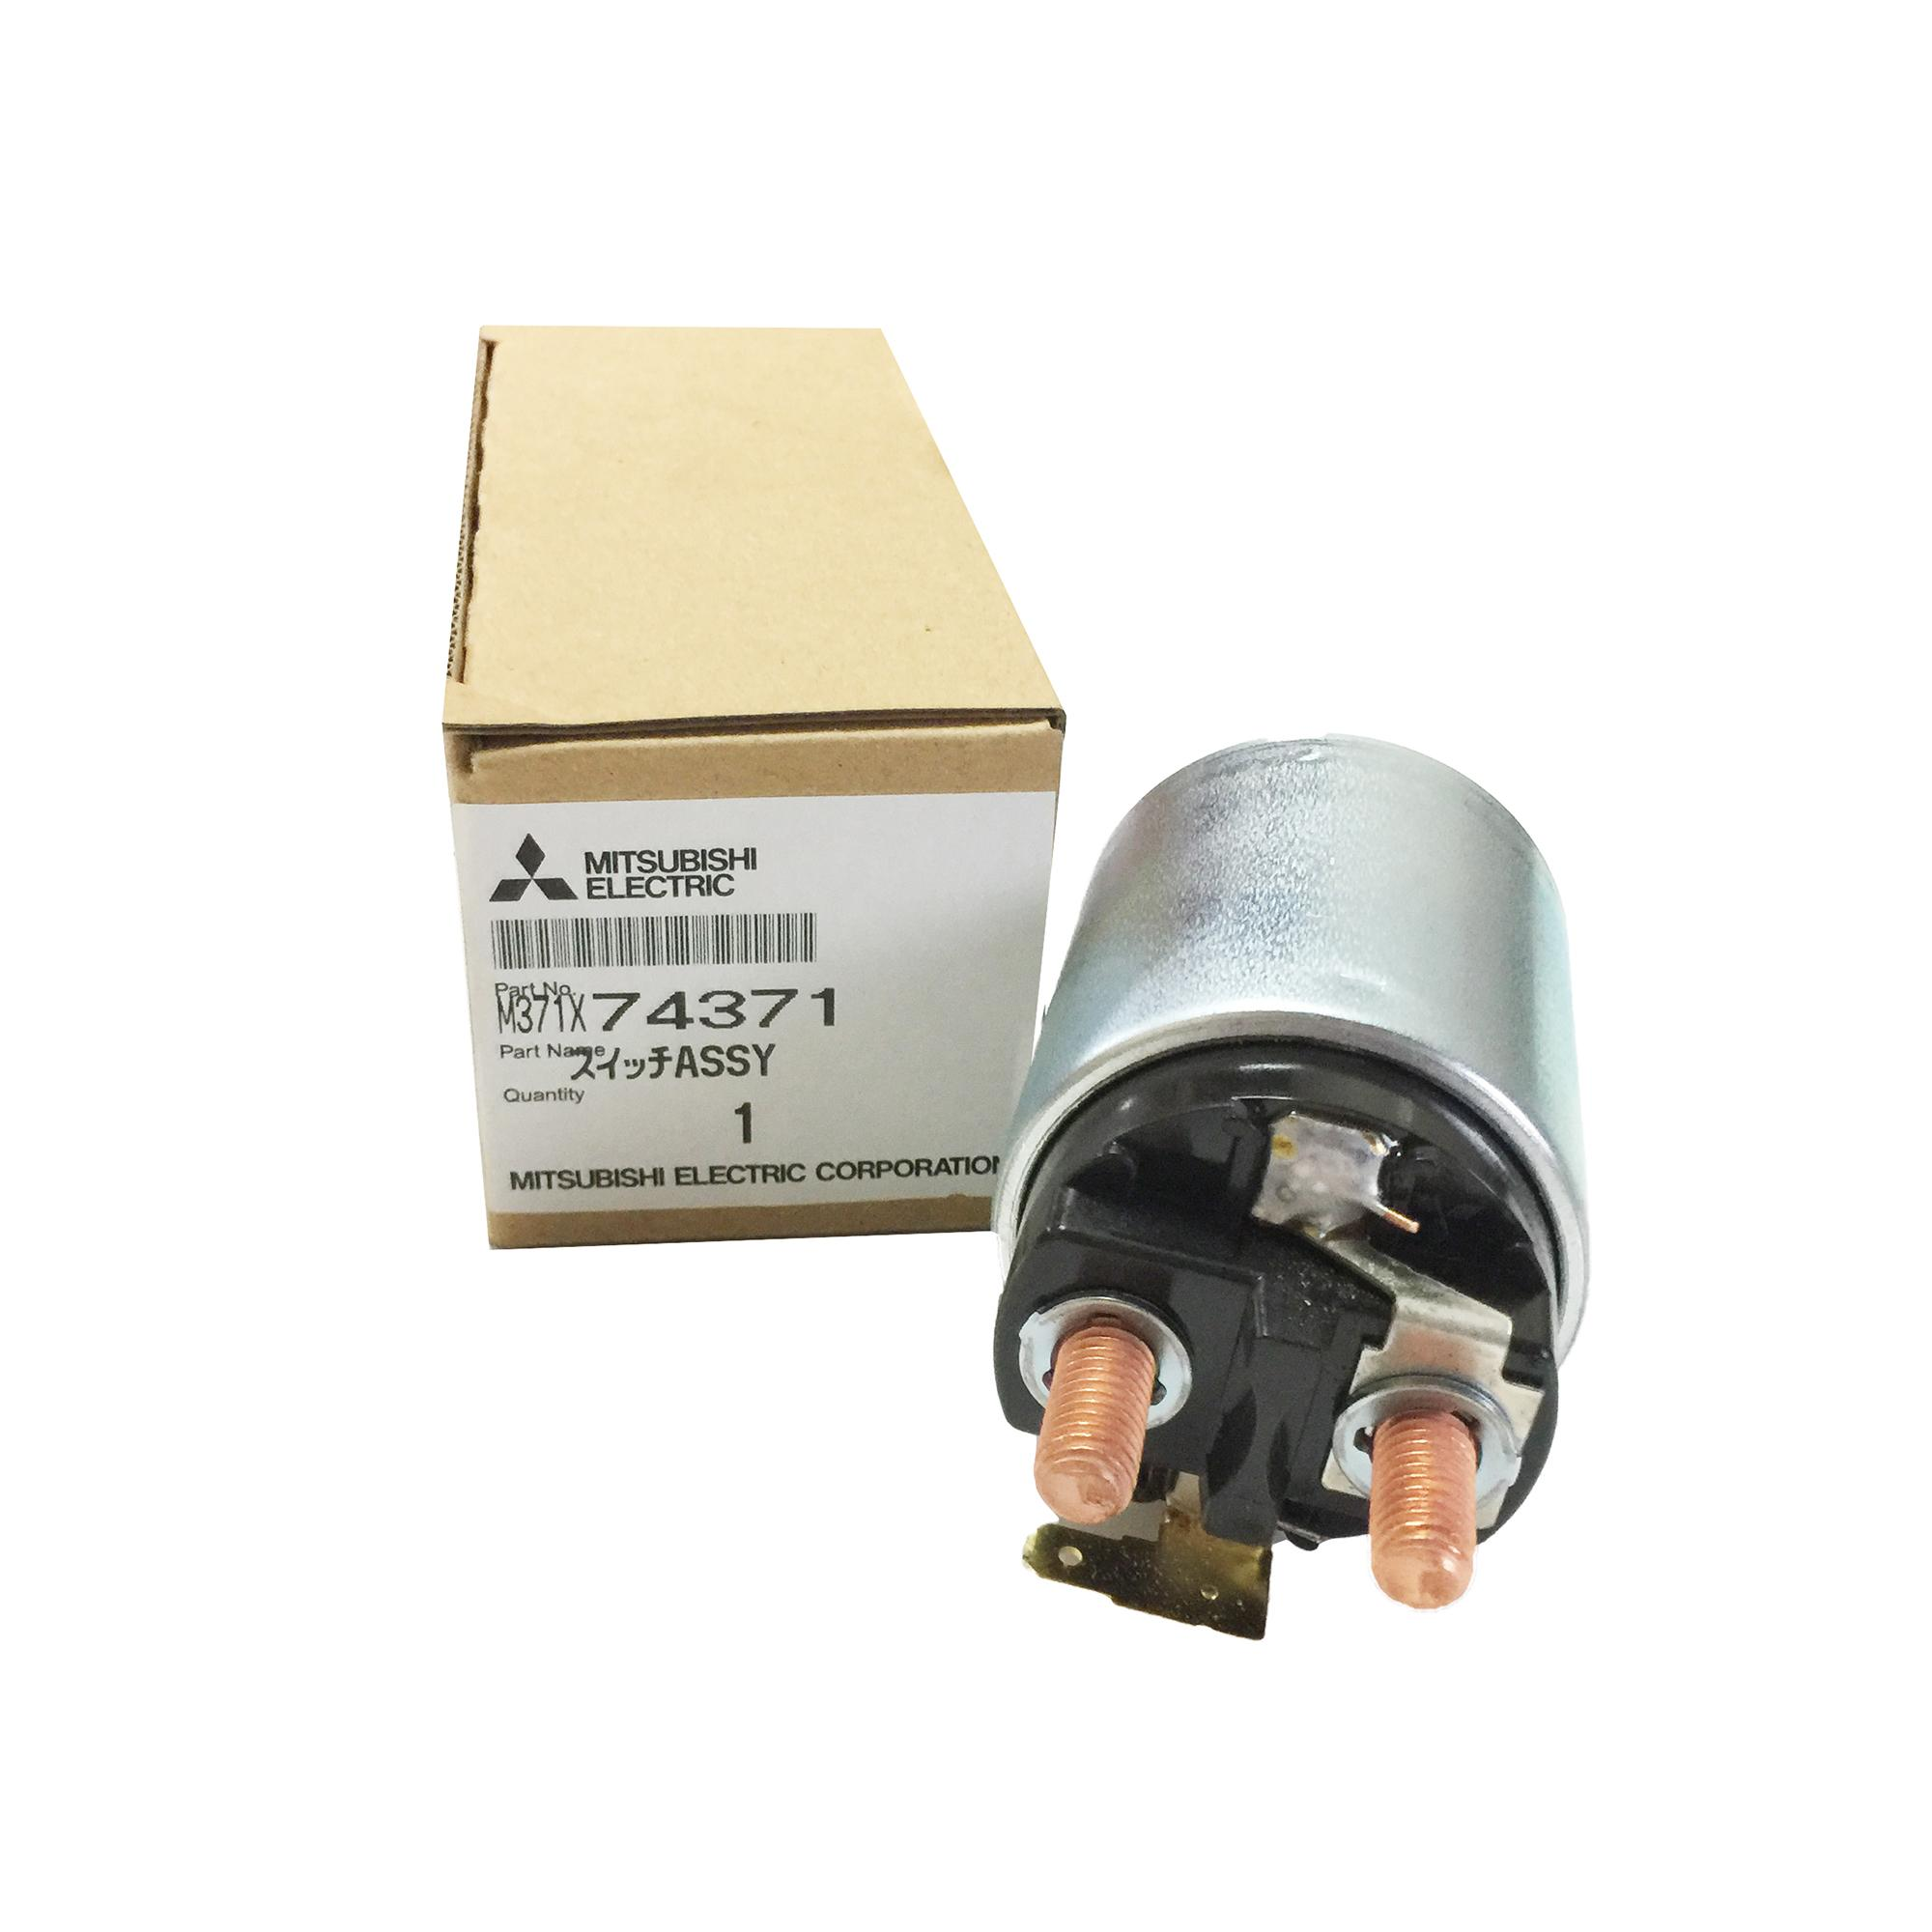 Solenoids For Sale Car Online Brands Prices Reviews 1999 Honda Accord Shift Solenoid Genuine Mitsubishi Electric Auto Parts Switch 74371